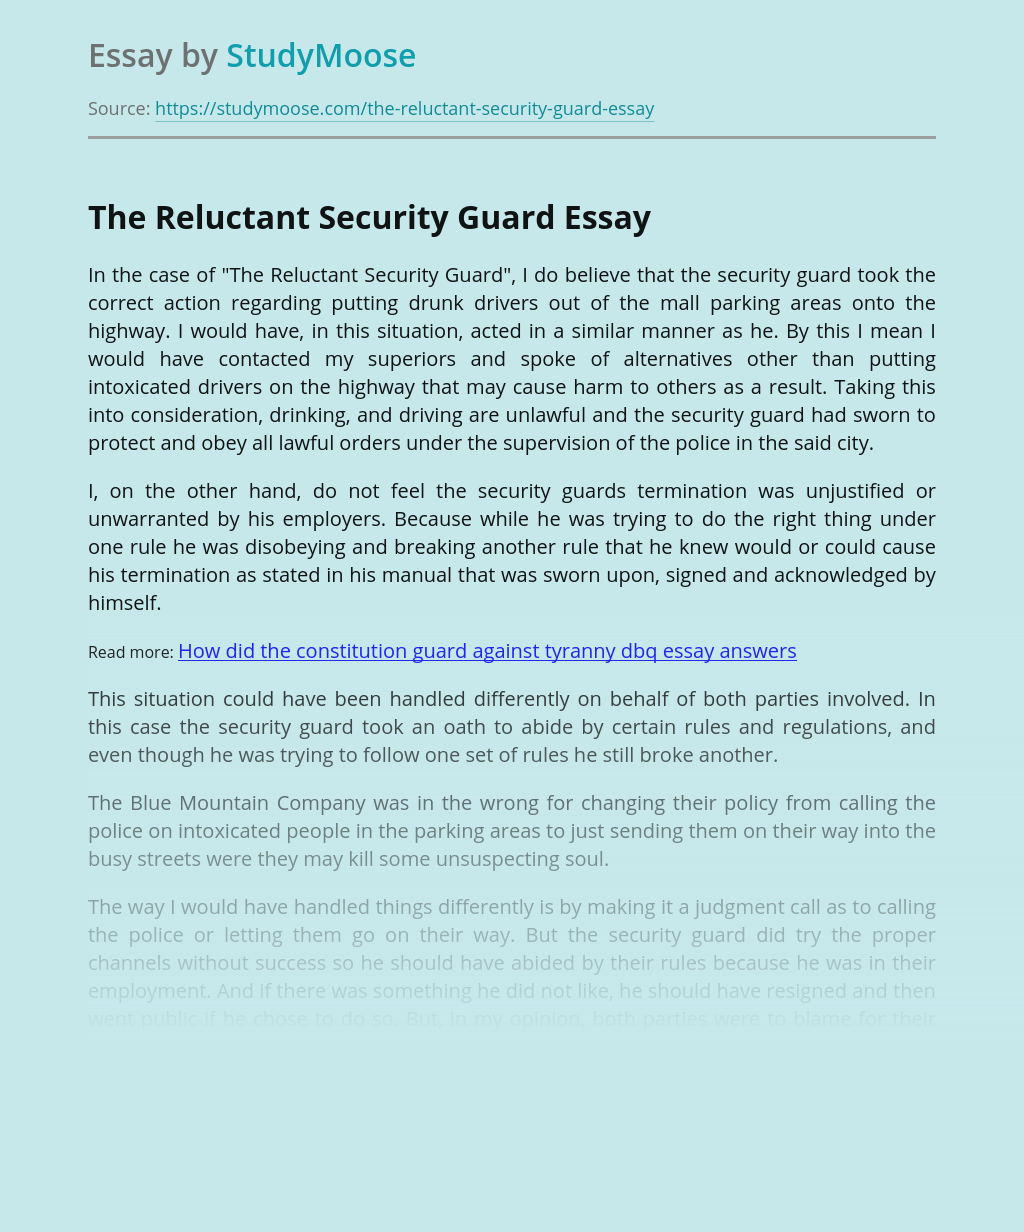 The Reluctant Security Guard